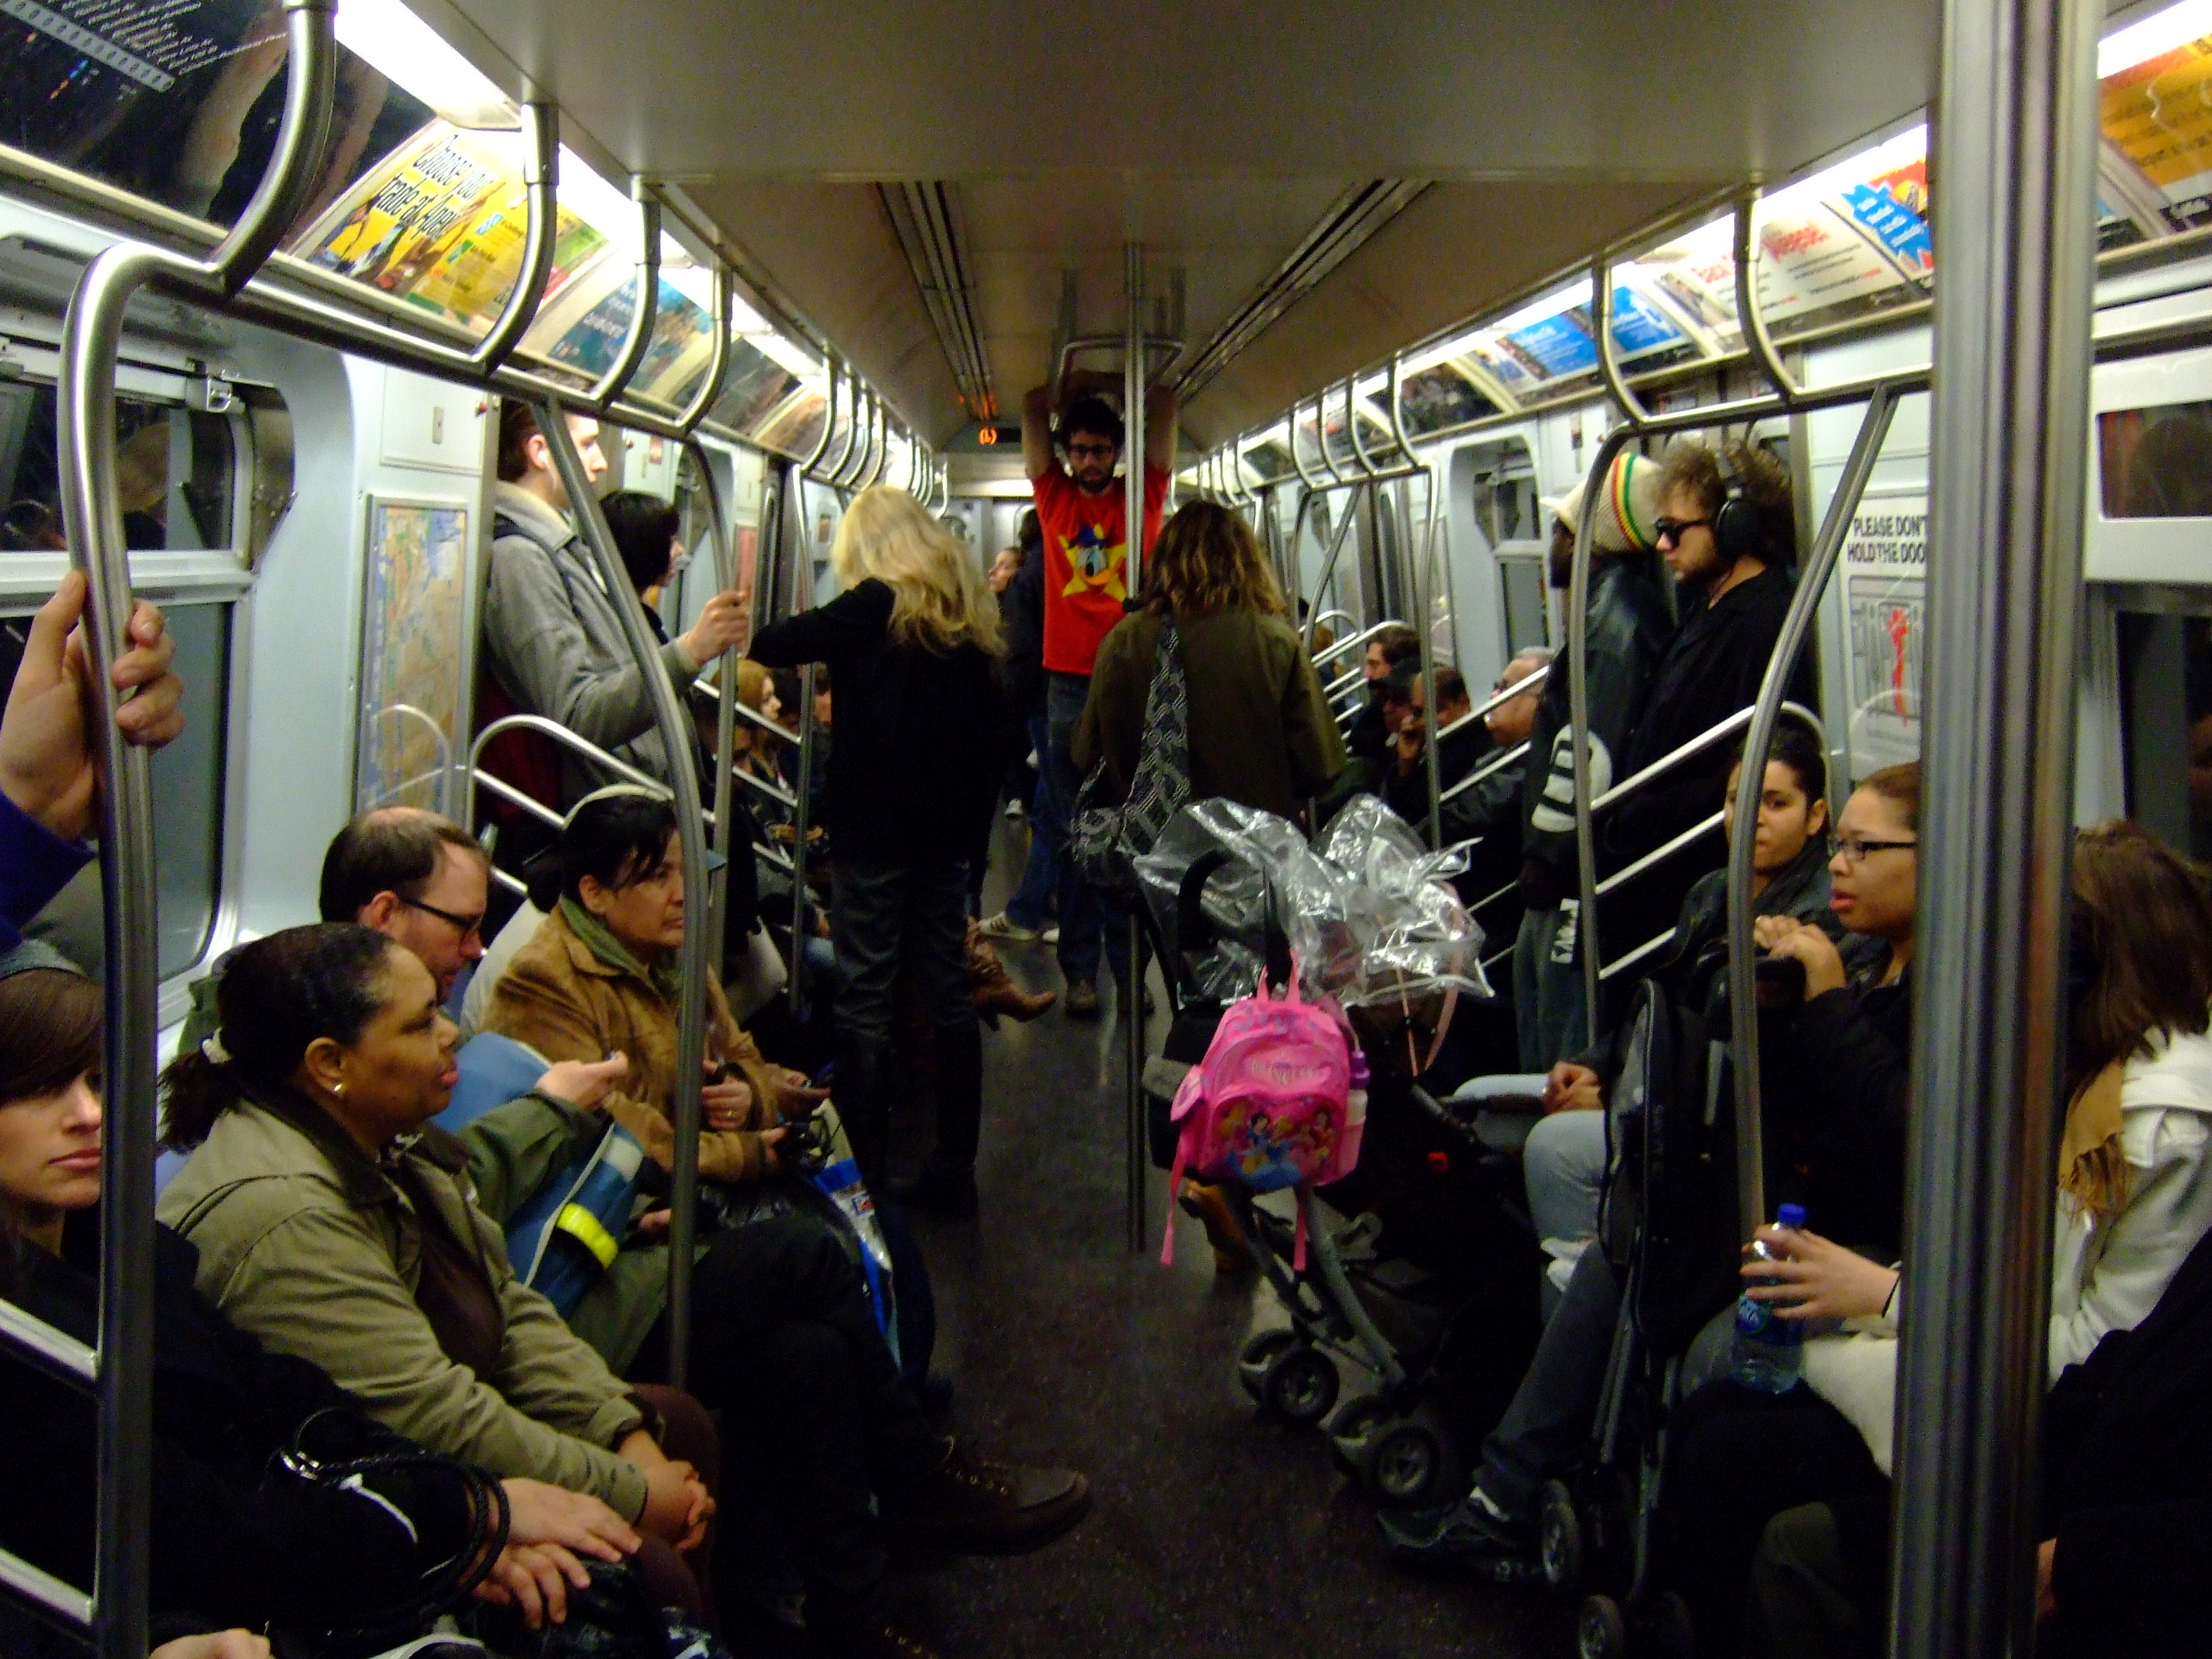 The People You See on the New York City Subway « Weekly Gravy